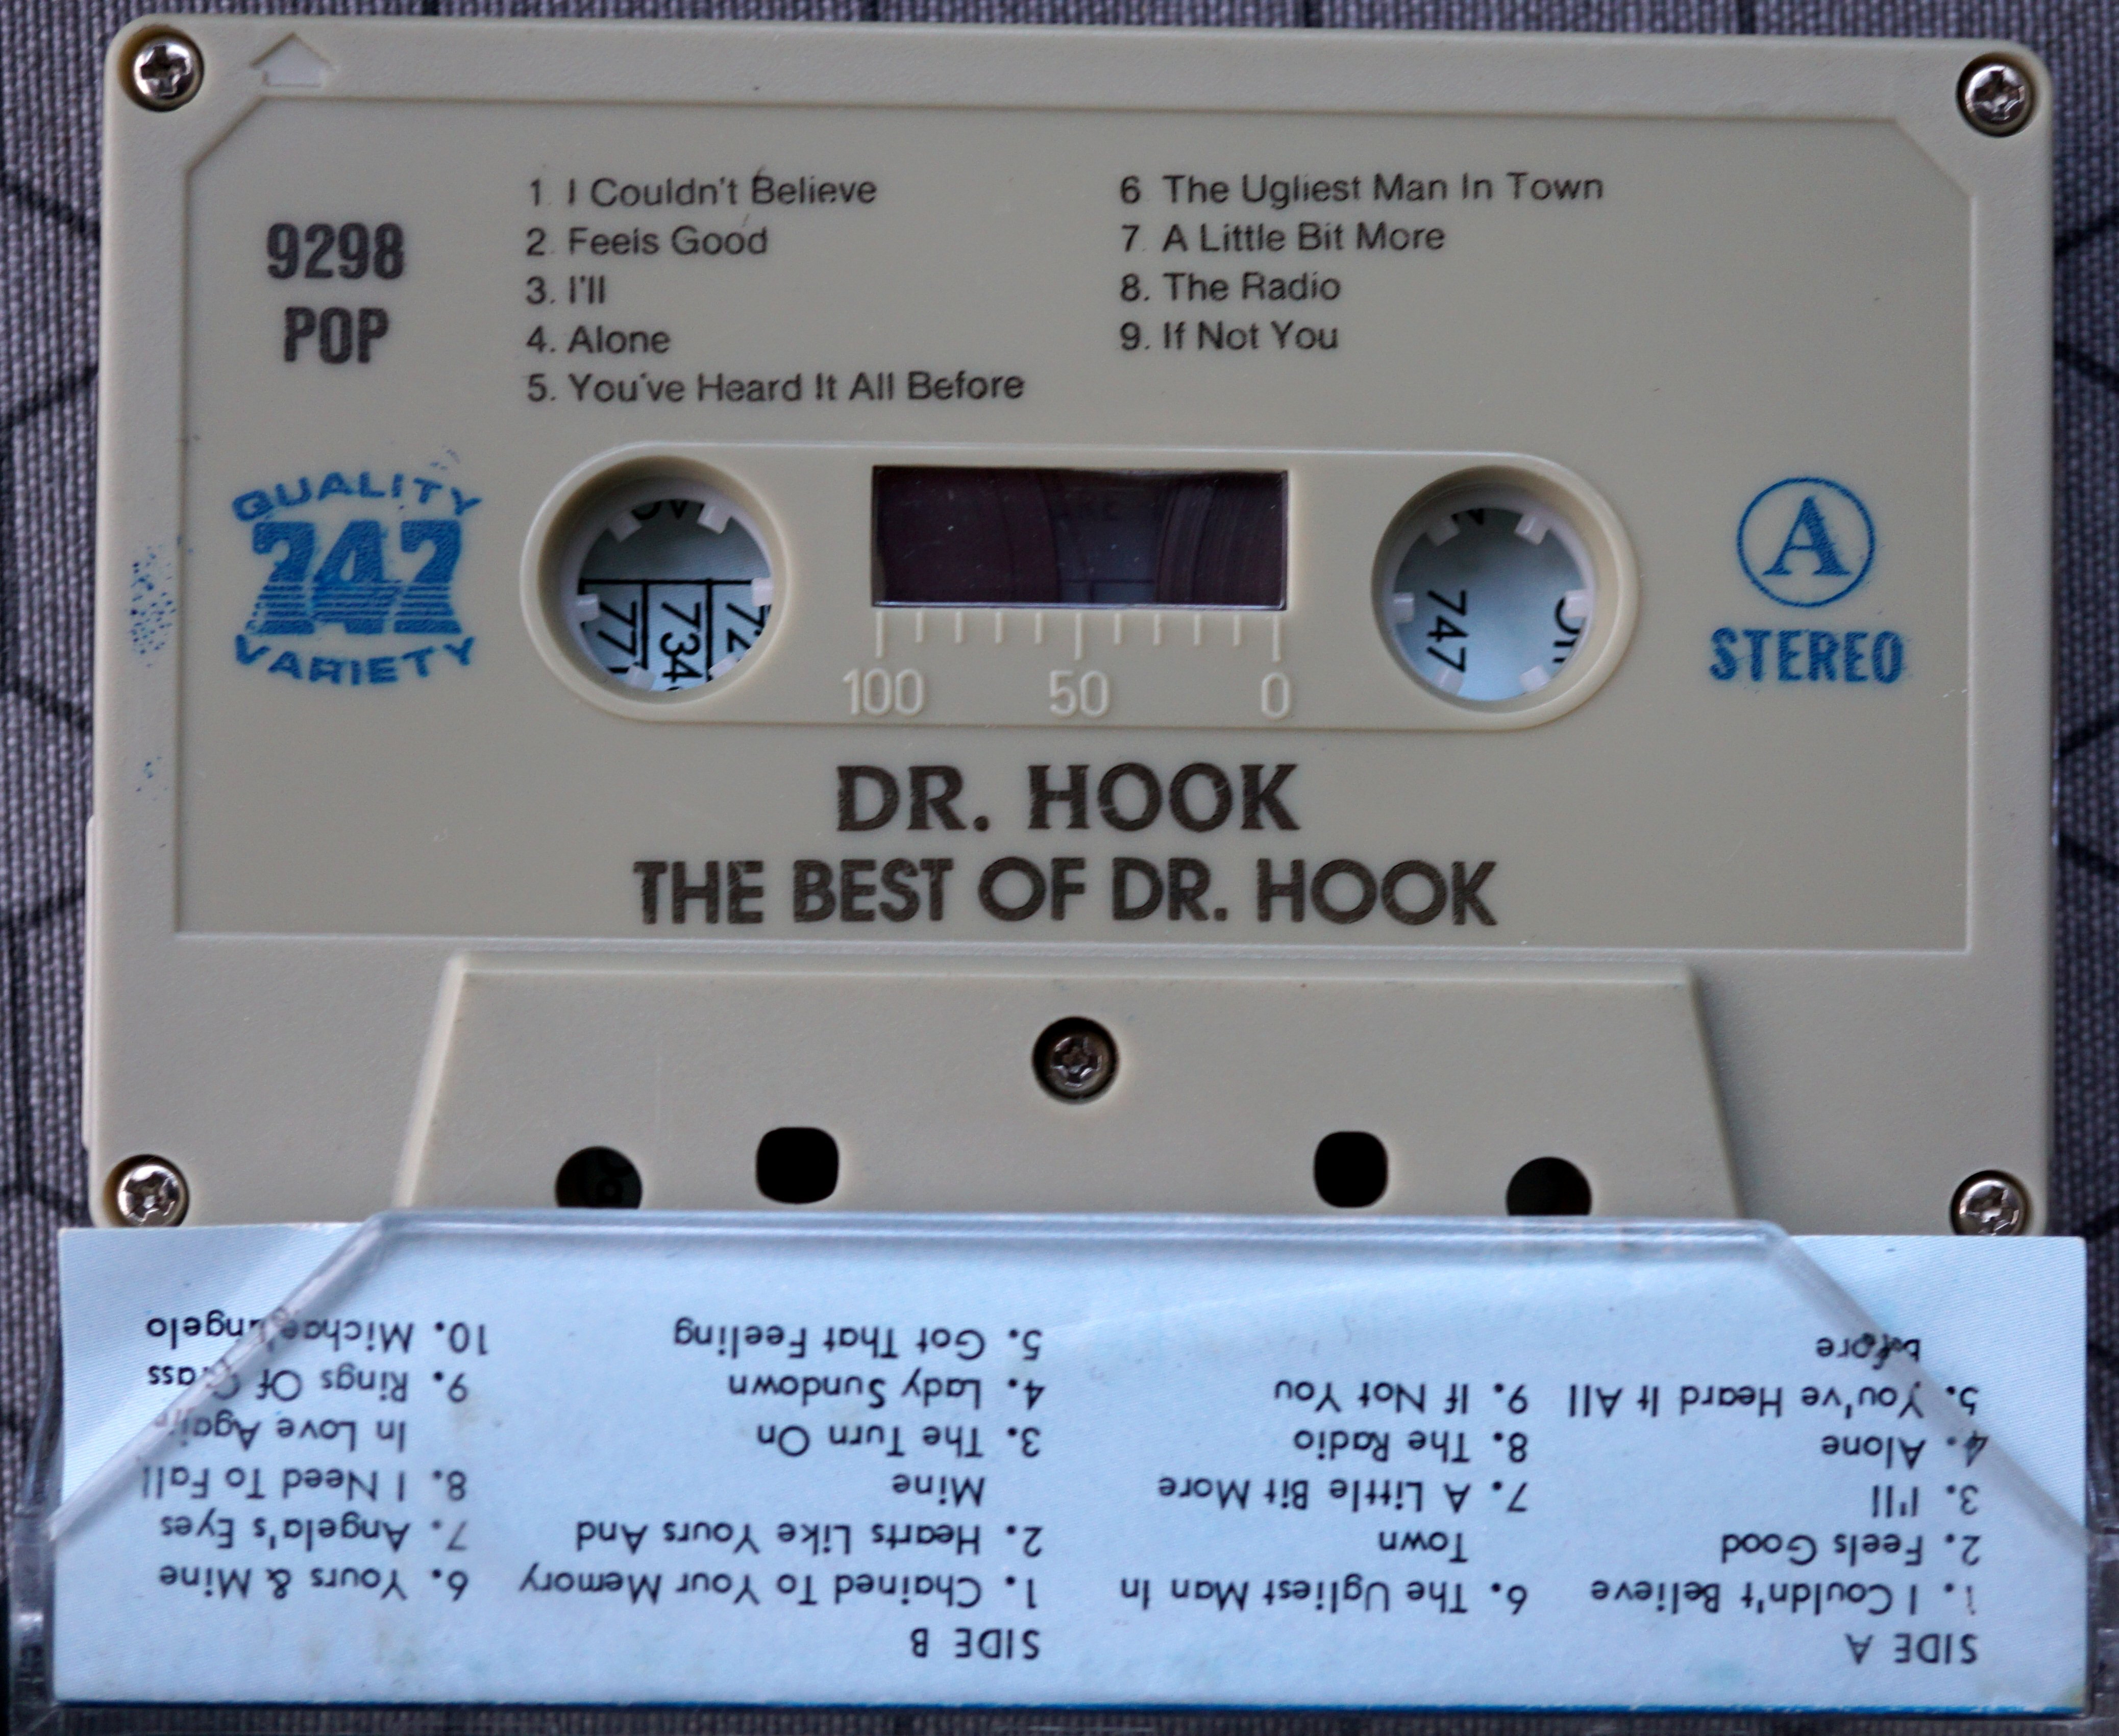 P - 747 POP 9298 - The best of dr Hook - 2